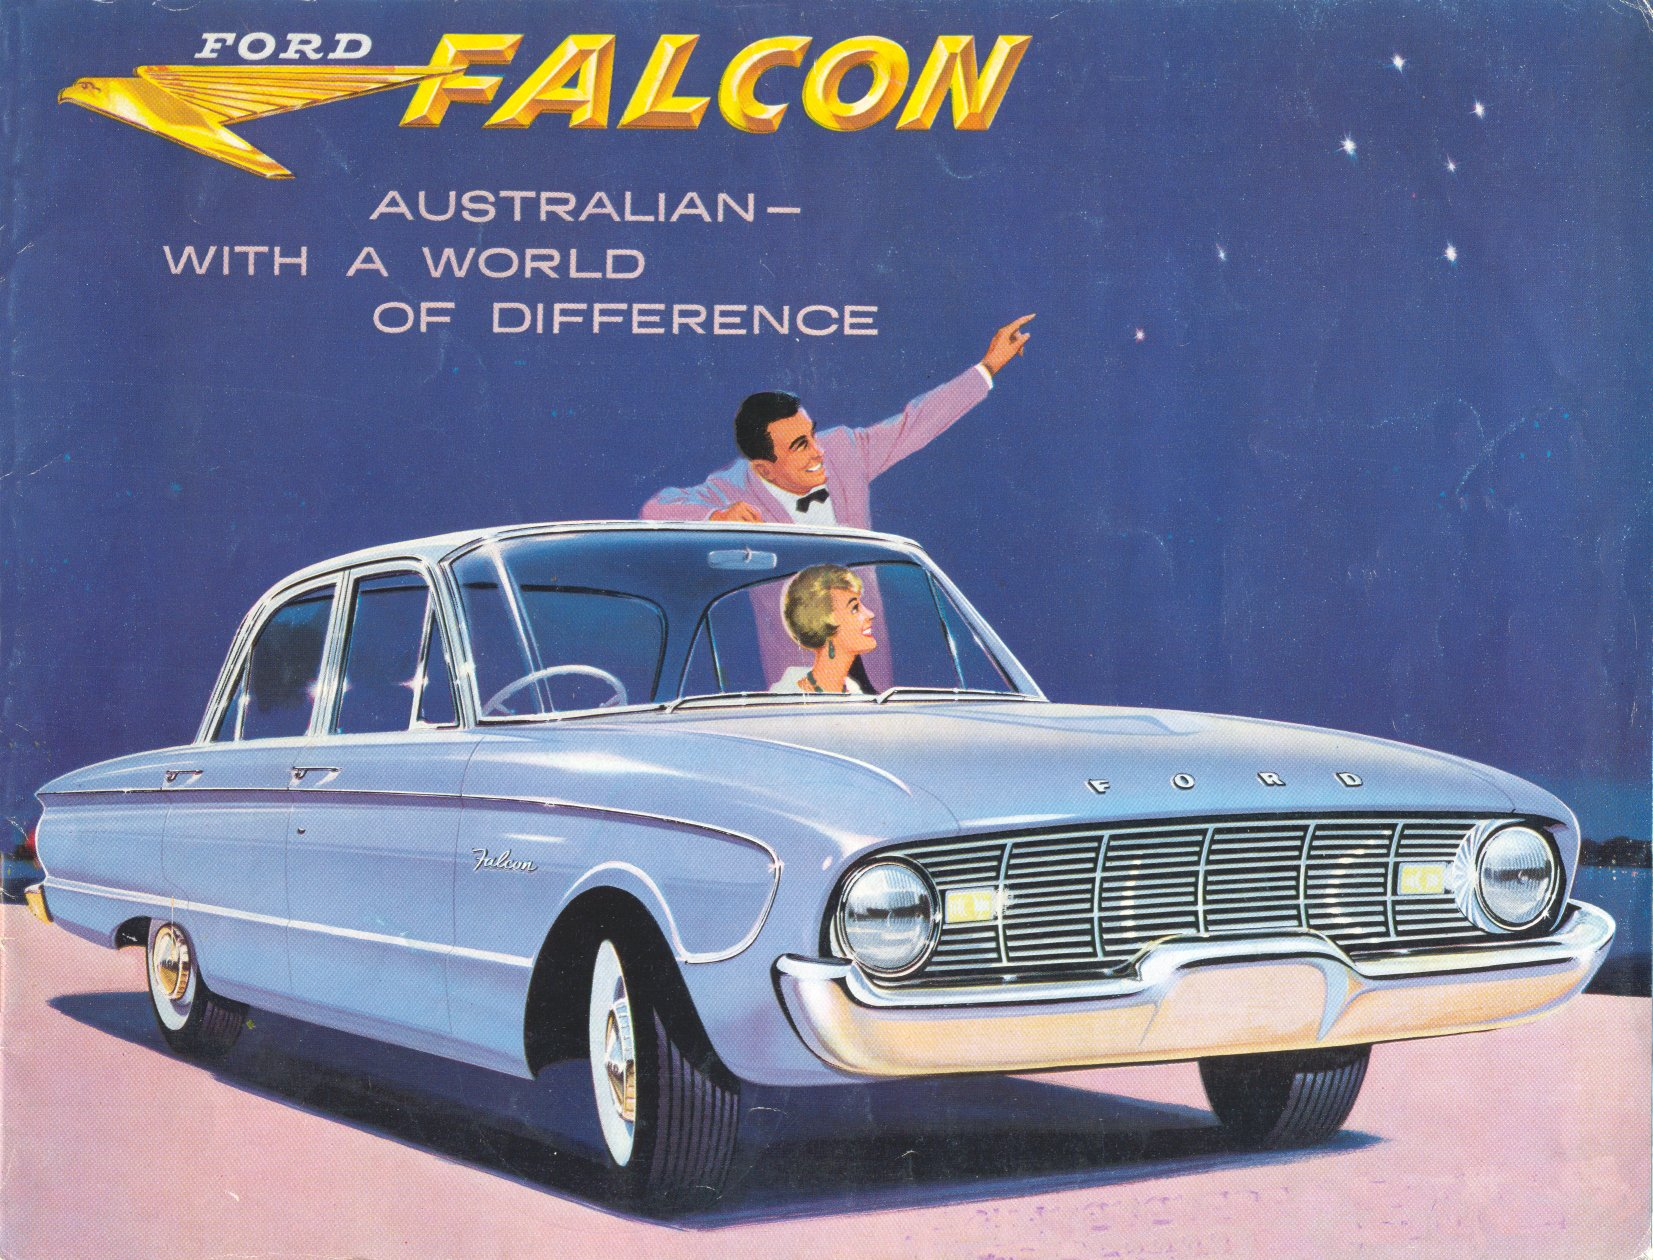 Ford Xp Ute Tonneau Cover besides 92084800 likewise 15 Best Convertible Supercars Hypercars Ever together with Custom Meets Lowrider In 60s Inspired Xm Falcon further 3236148984. on ford xk falcon